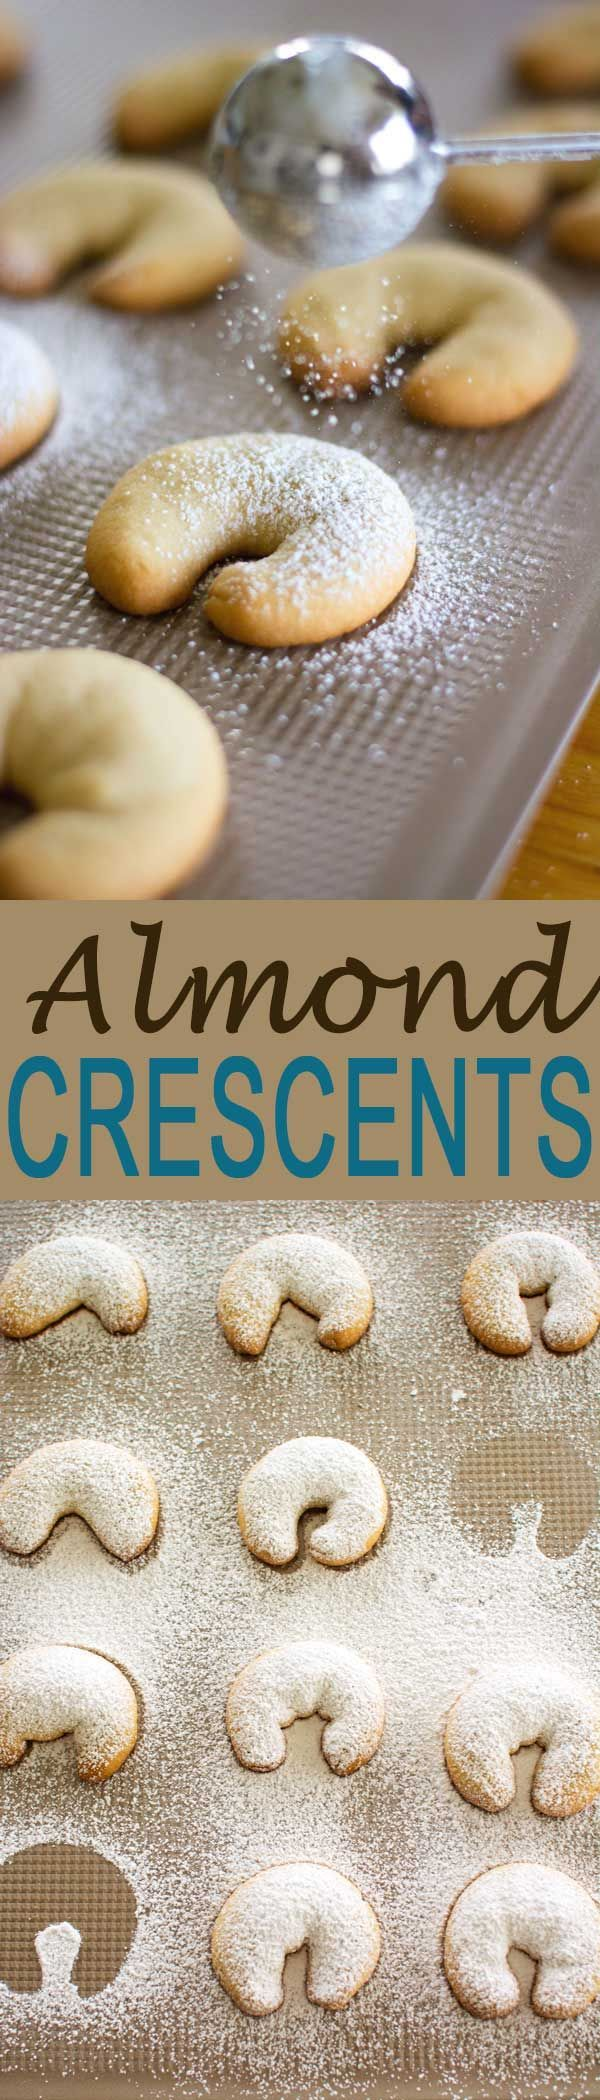 Almond Crescents made with ground almonds, flavored with vanilla and dusted with…